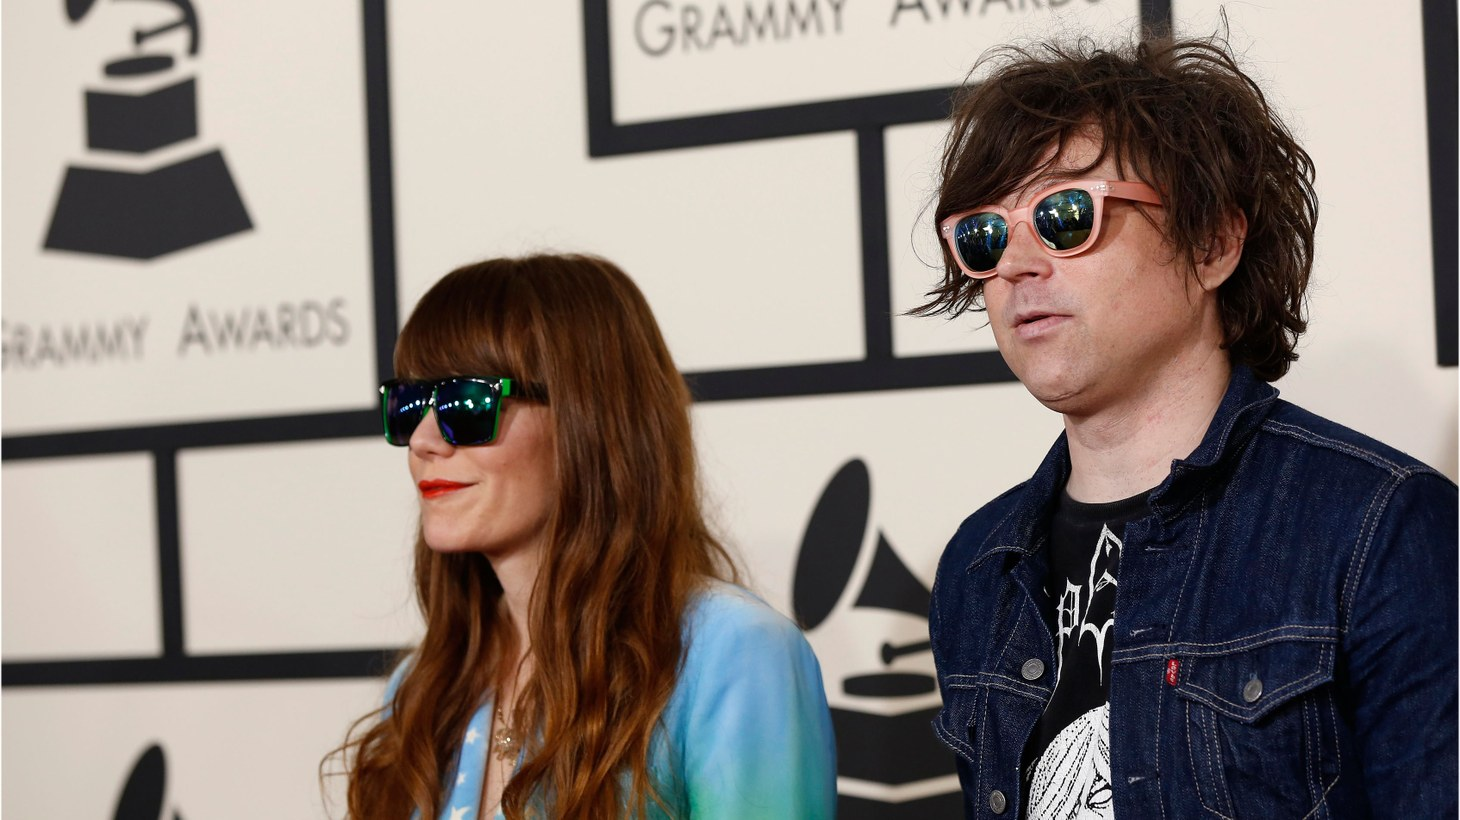 Singers Jenny Lewis and Ryan Adams arrive at the 57th annual Grammy Awards in Los Angeles, California, February 8th, 2015.